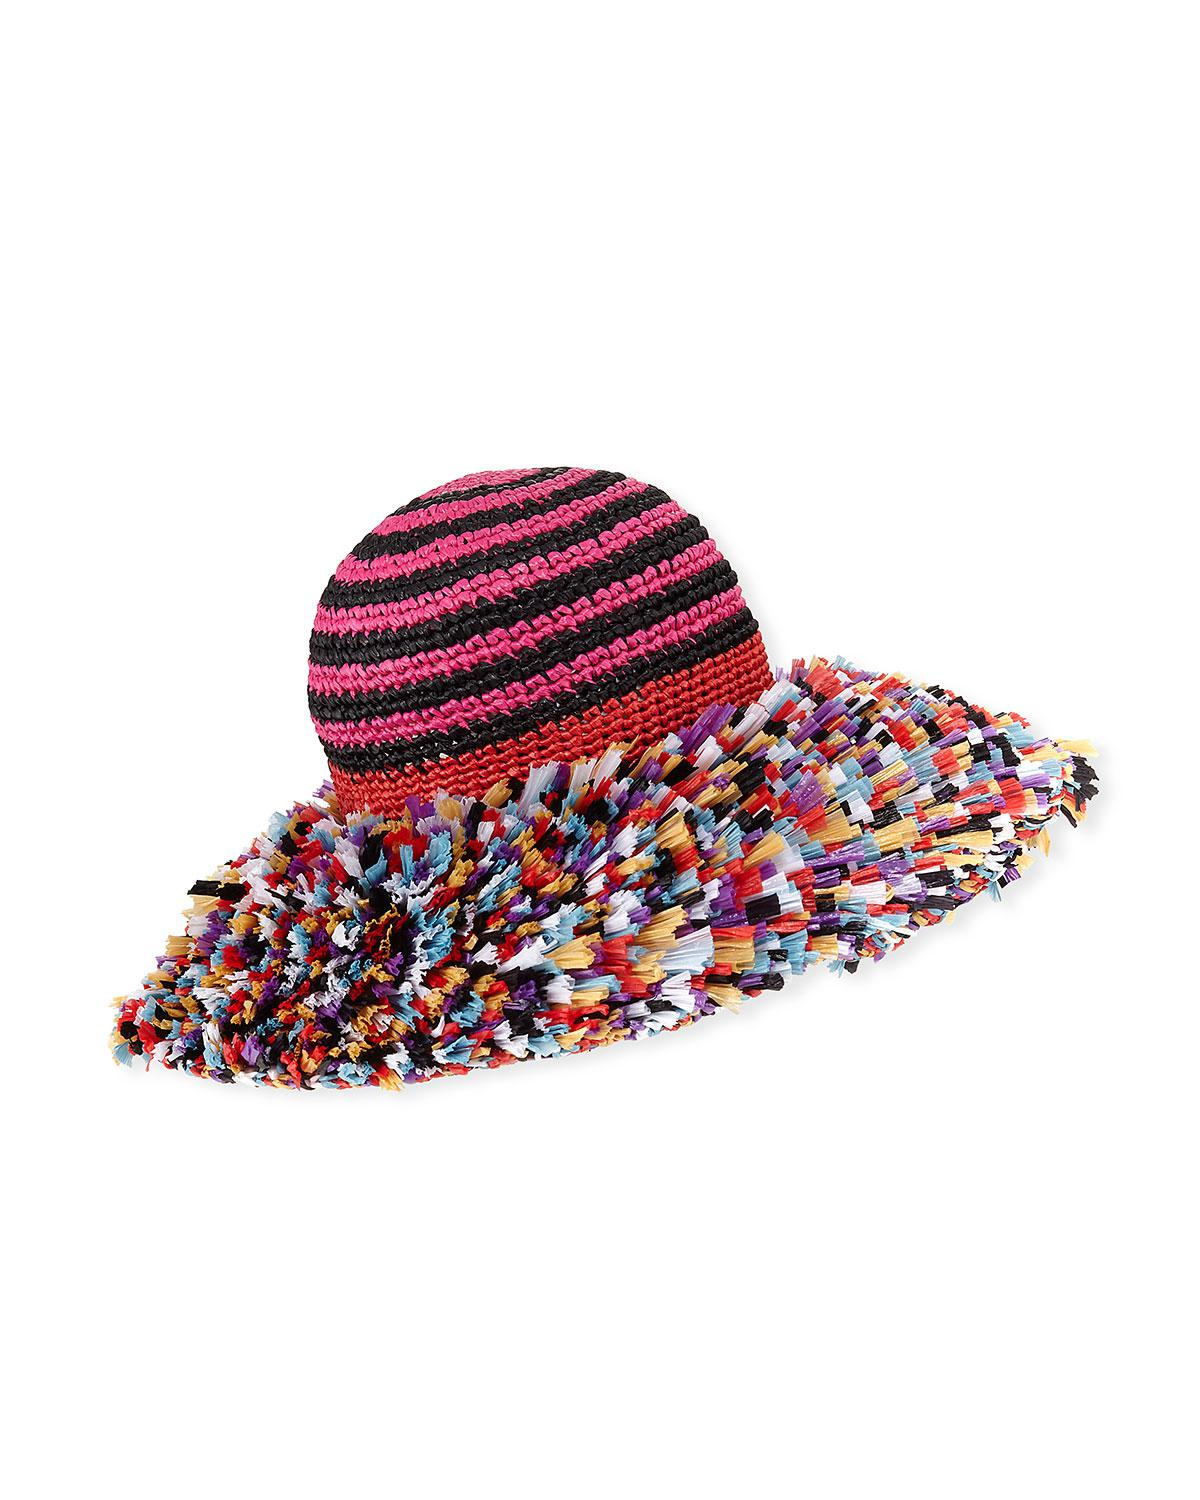 bdb08870c94626 Missoni Fringe Sun Hat in Red - Lyst